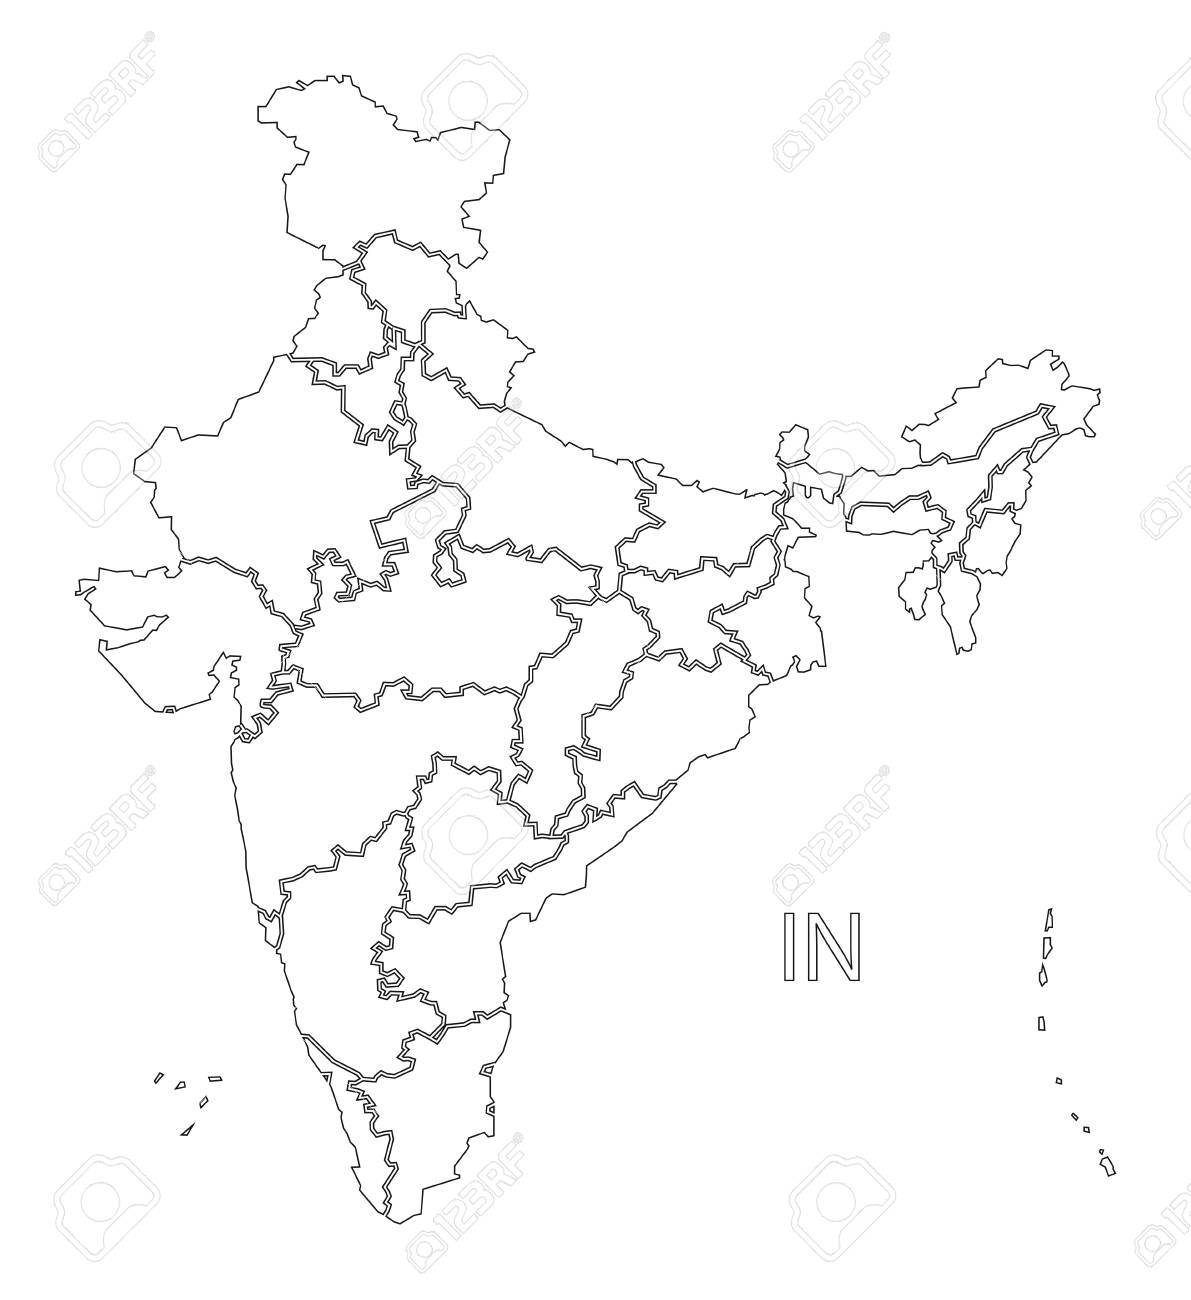 india map outline vector India Outline Silhouette Map Illustration With States Royalty india map outline vector